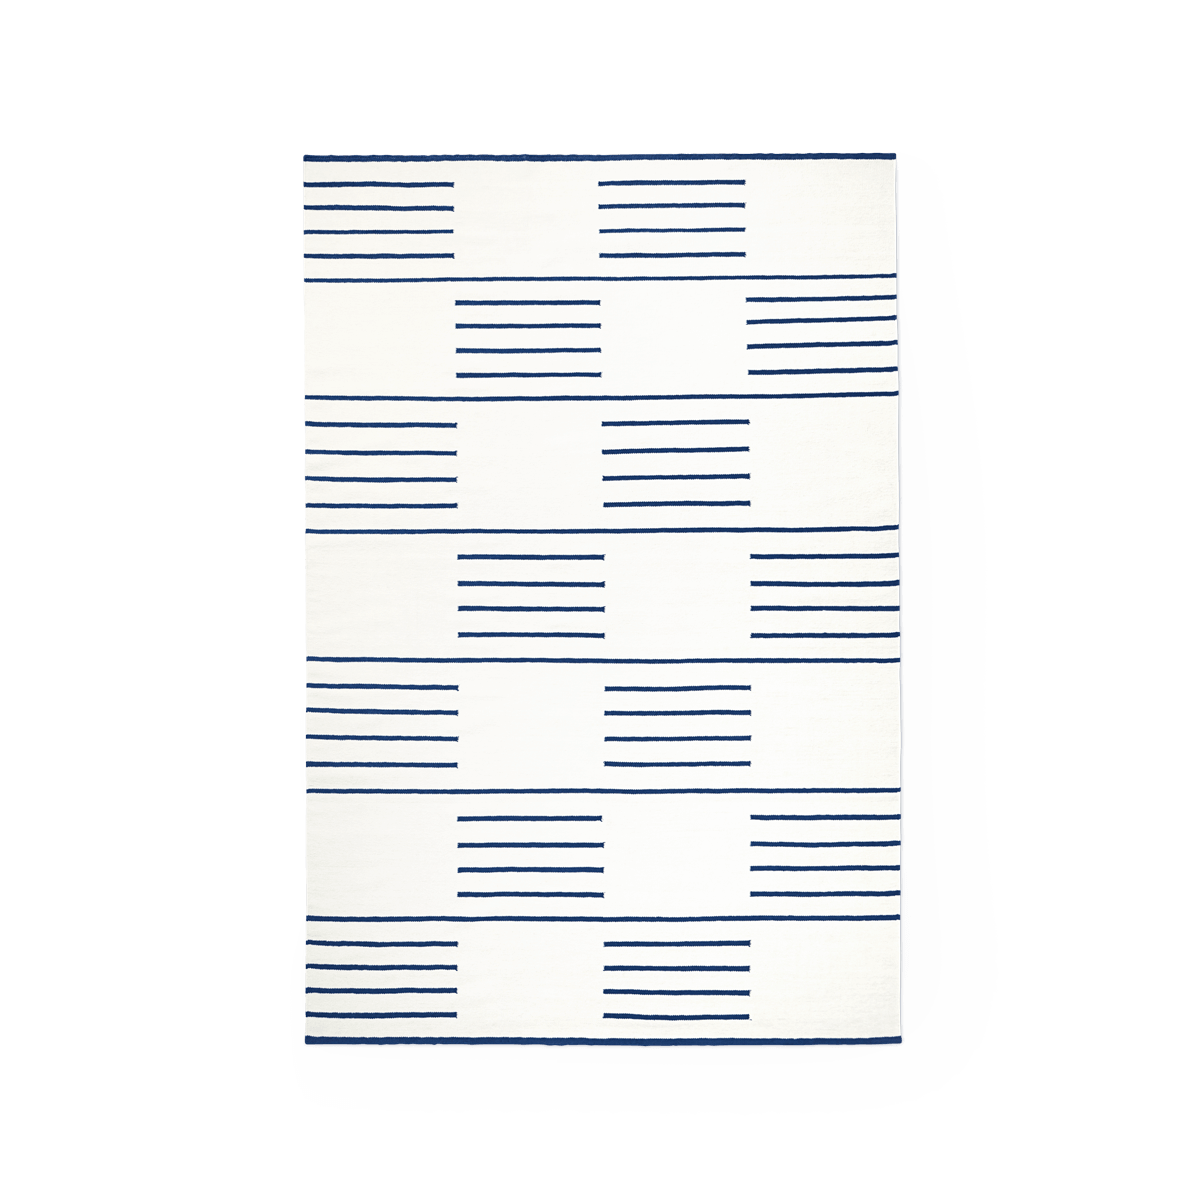 Product image of the flatweave rug Classic in the color Cream. On it is a pattern made out of stripes in a checkerboard fashion in a Blue color.